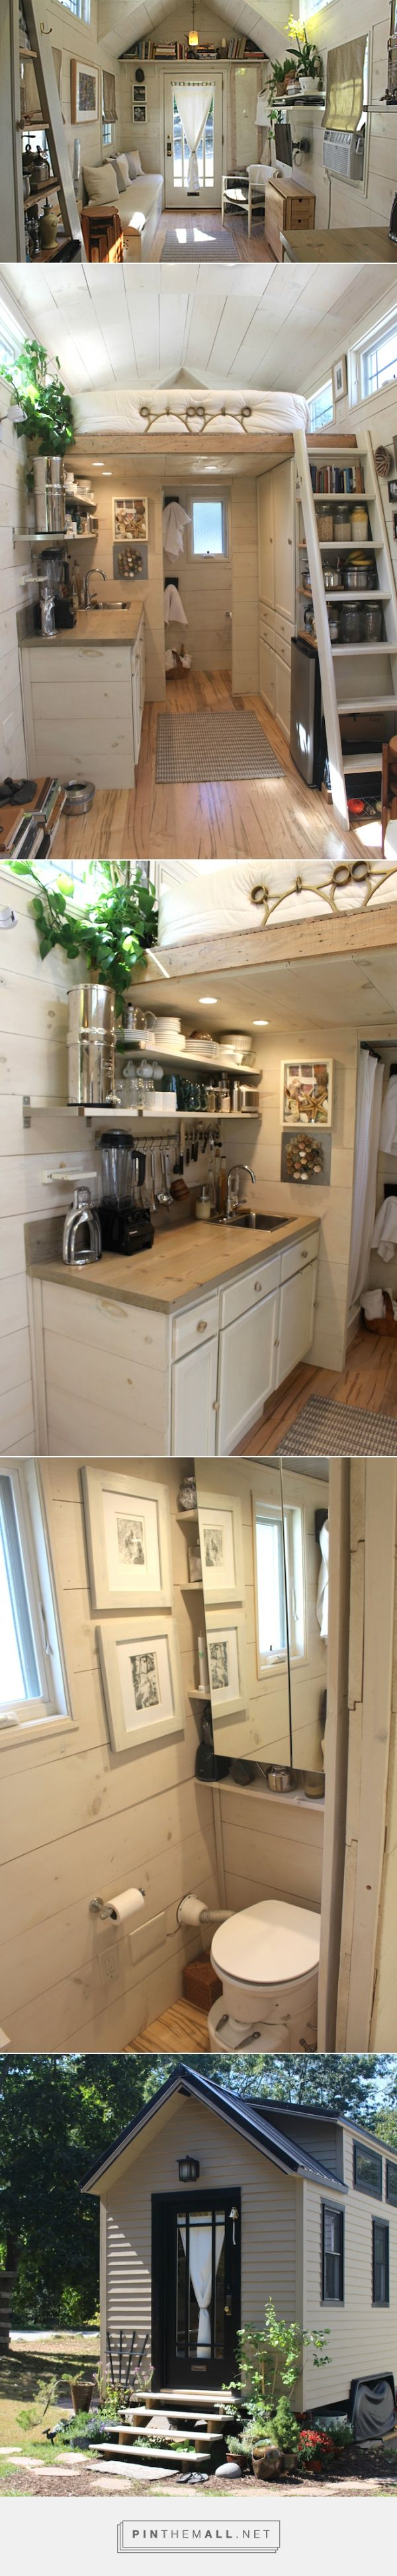 Impressive Tiny House Built for Under $30K Fits Family of 3 - Tiny Living - Curbed... - a grouped images picture - Pin Them All